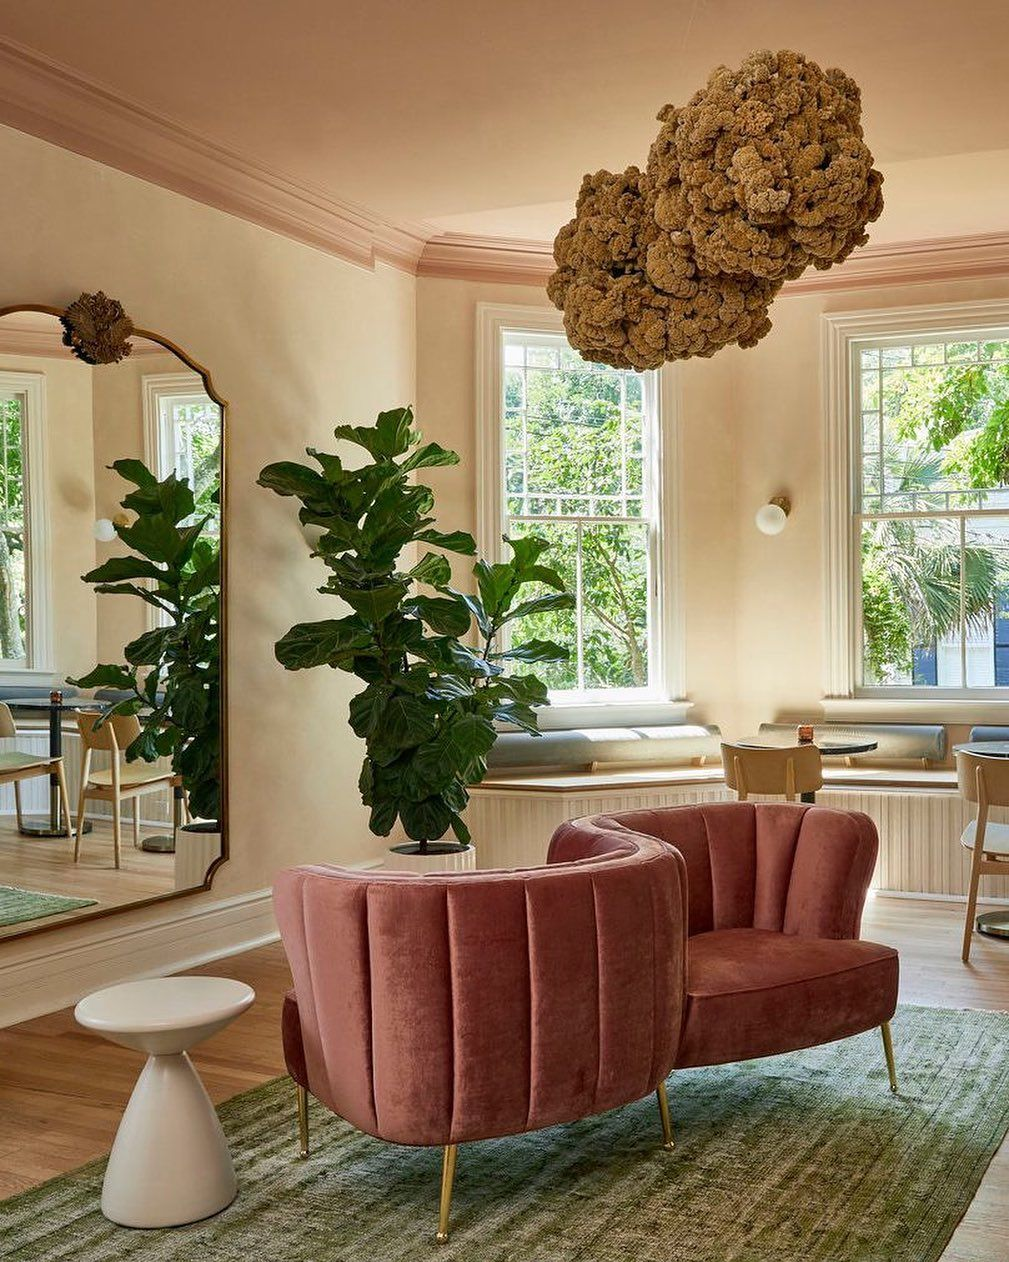 Anthroliving S Instagram Post The Founders Of Dreamers Welcome A Boutique Hotel Nestled In The Charming Historic District In 2020 House Design Boutique Hotel Hotel